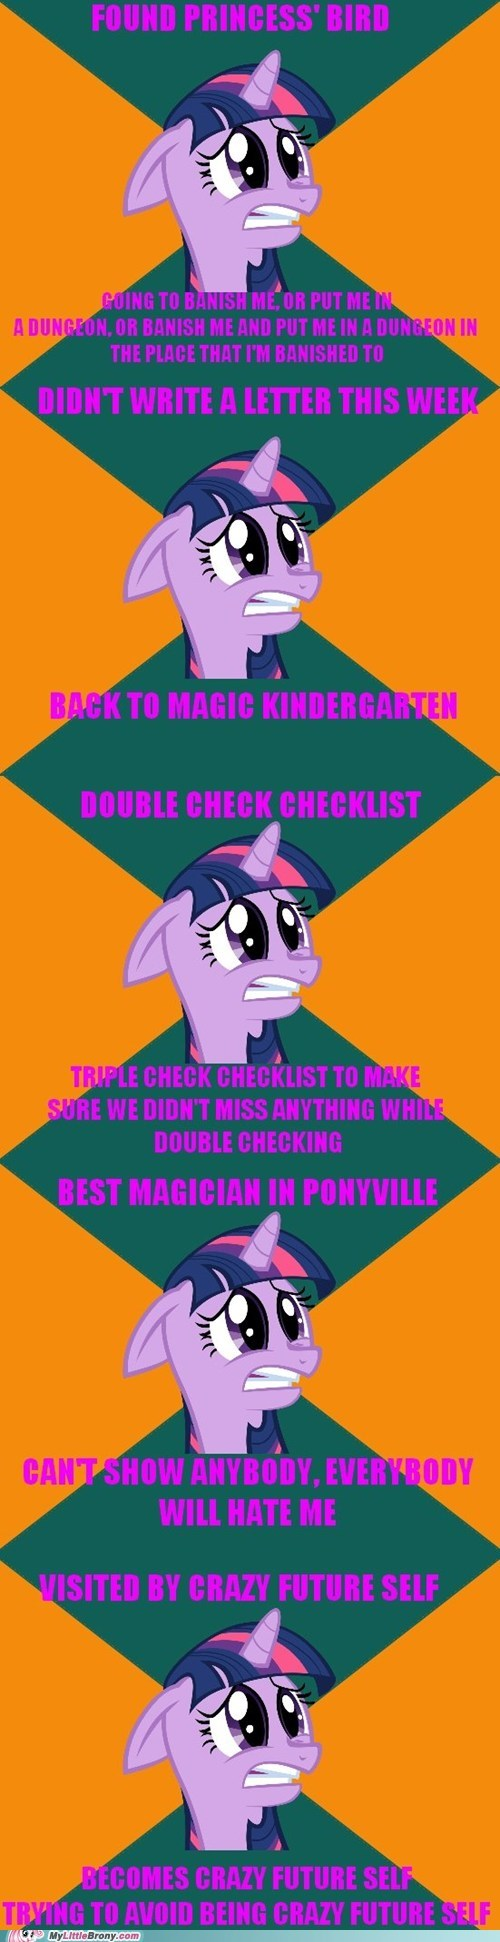 crossover meme paranoid pony twilight sparkle - 6355538176